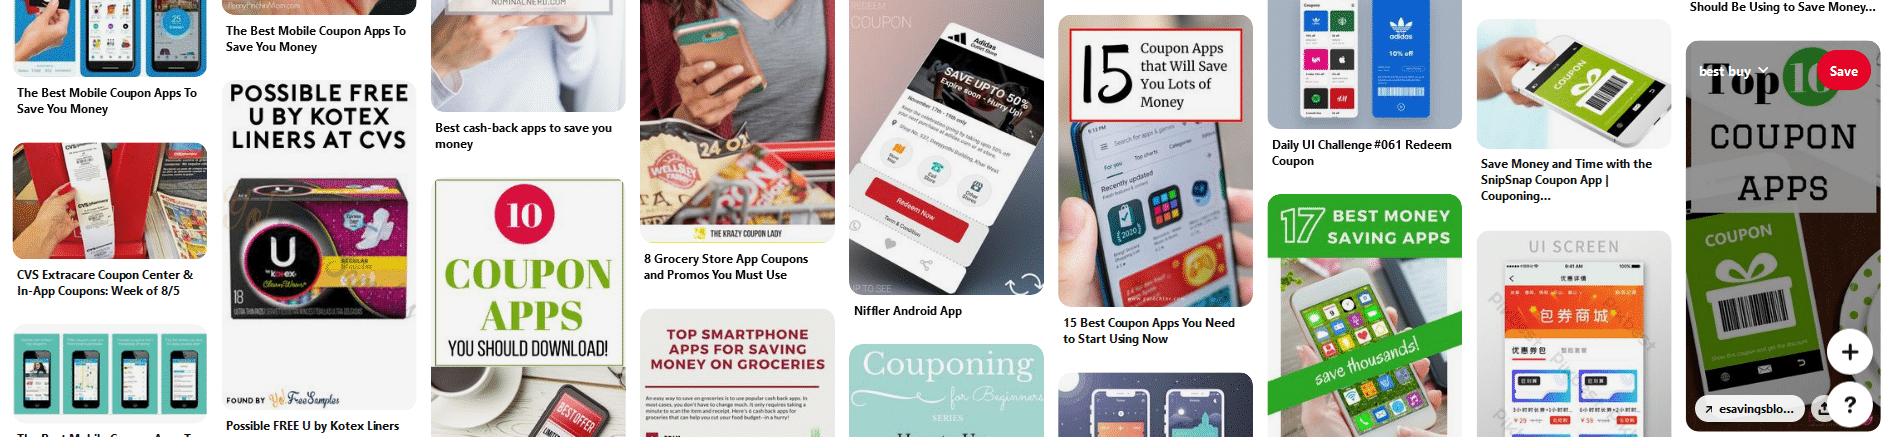 Free internet apps allowing for coupons